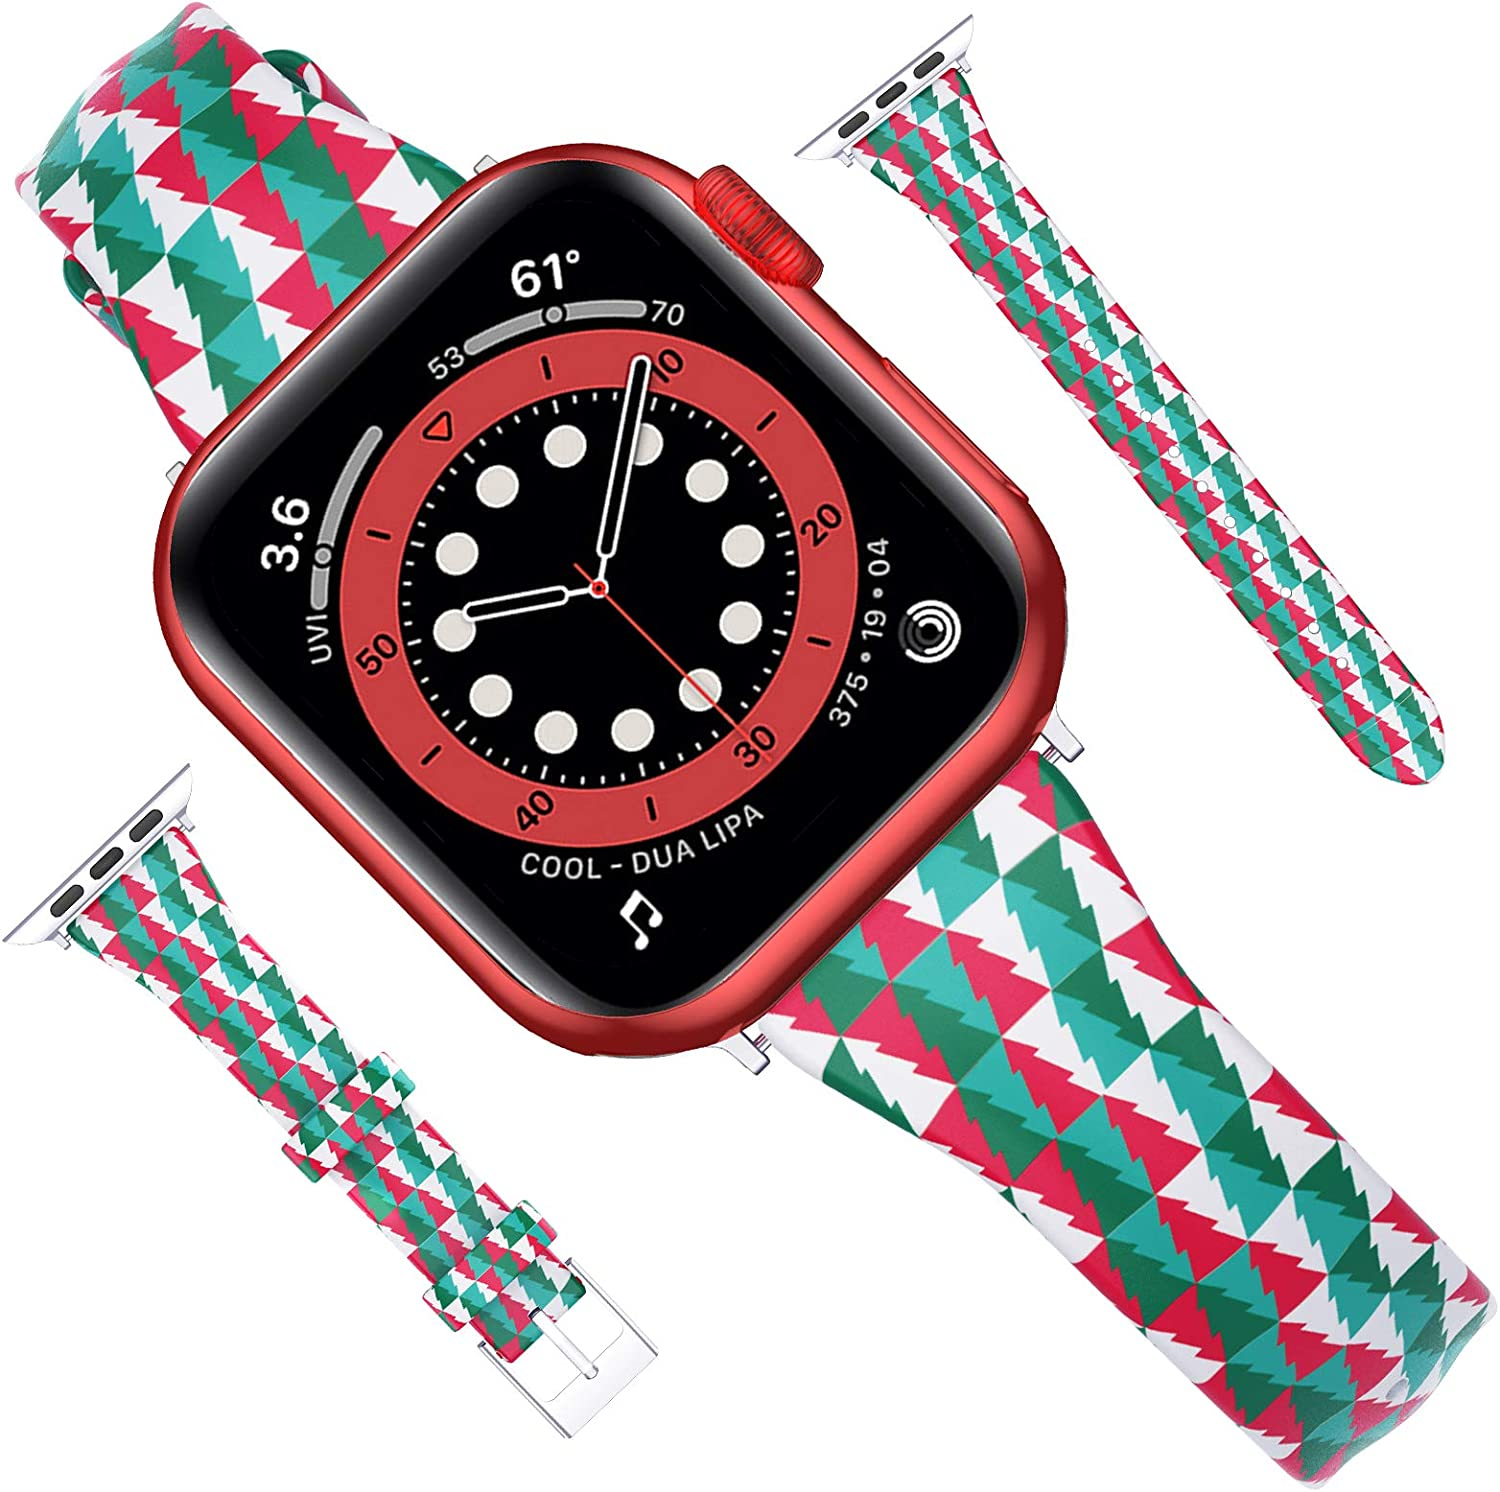 Goton Compatible for Apple Watch Band 38mm 40mm Leather, Women Girl Soft Slim Christmas Tree Genuine Leather Wristband Straps for iWatch SE Series 6 5 4 3 2 1 Band (Christmastree, 38mm/40mm)